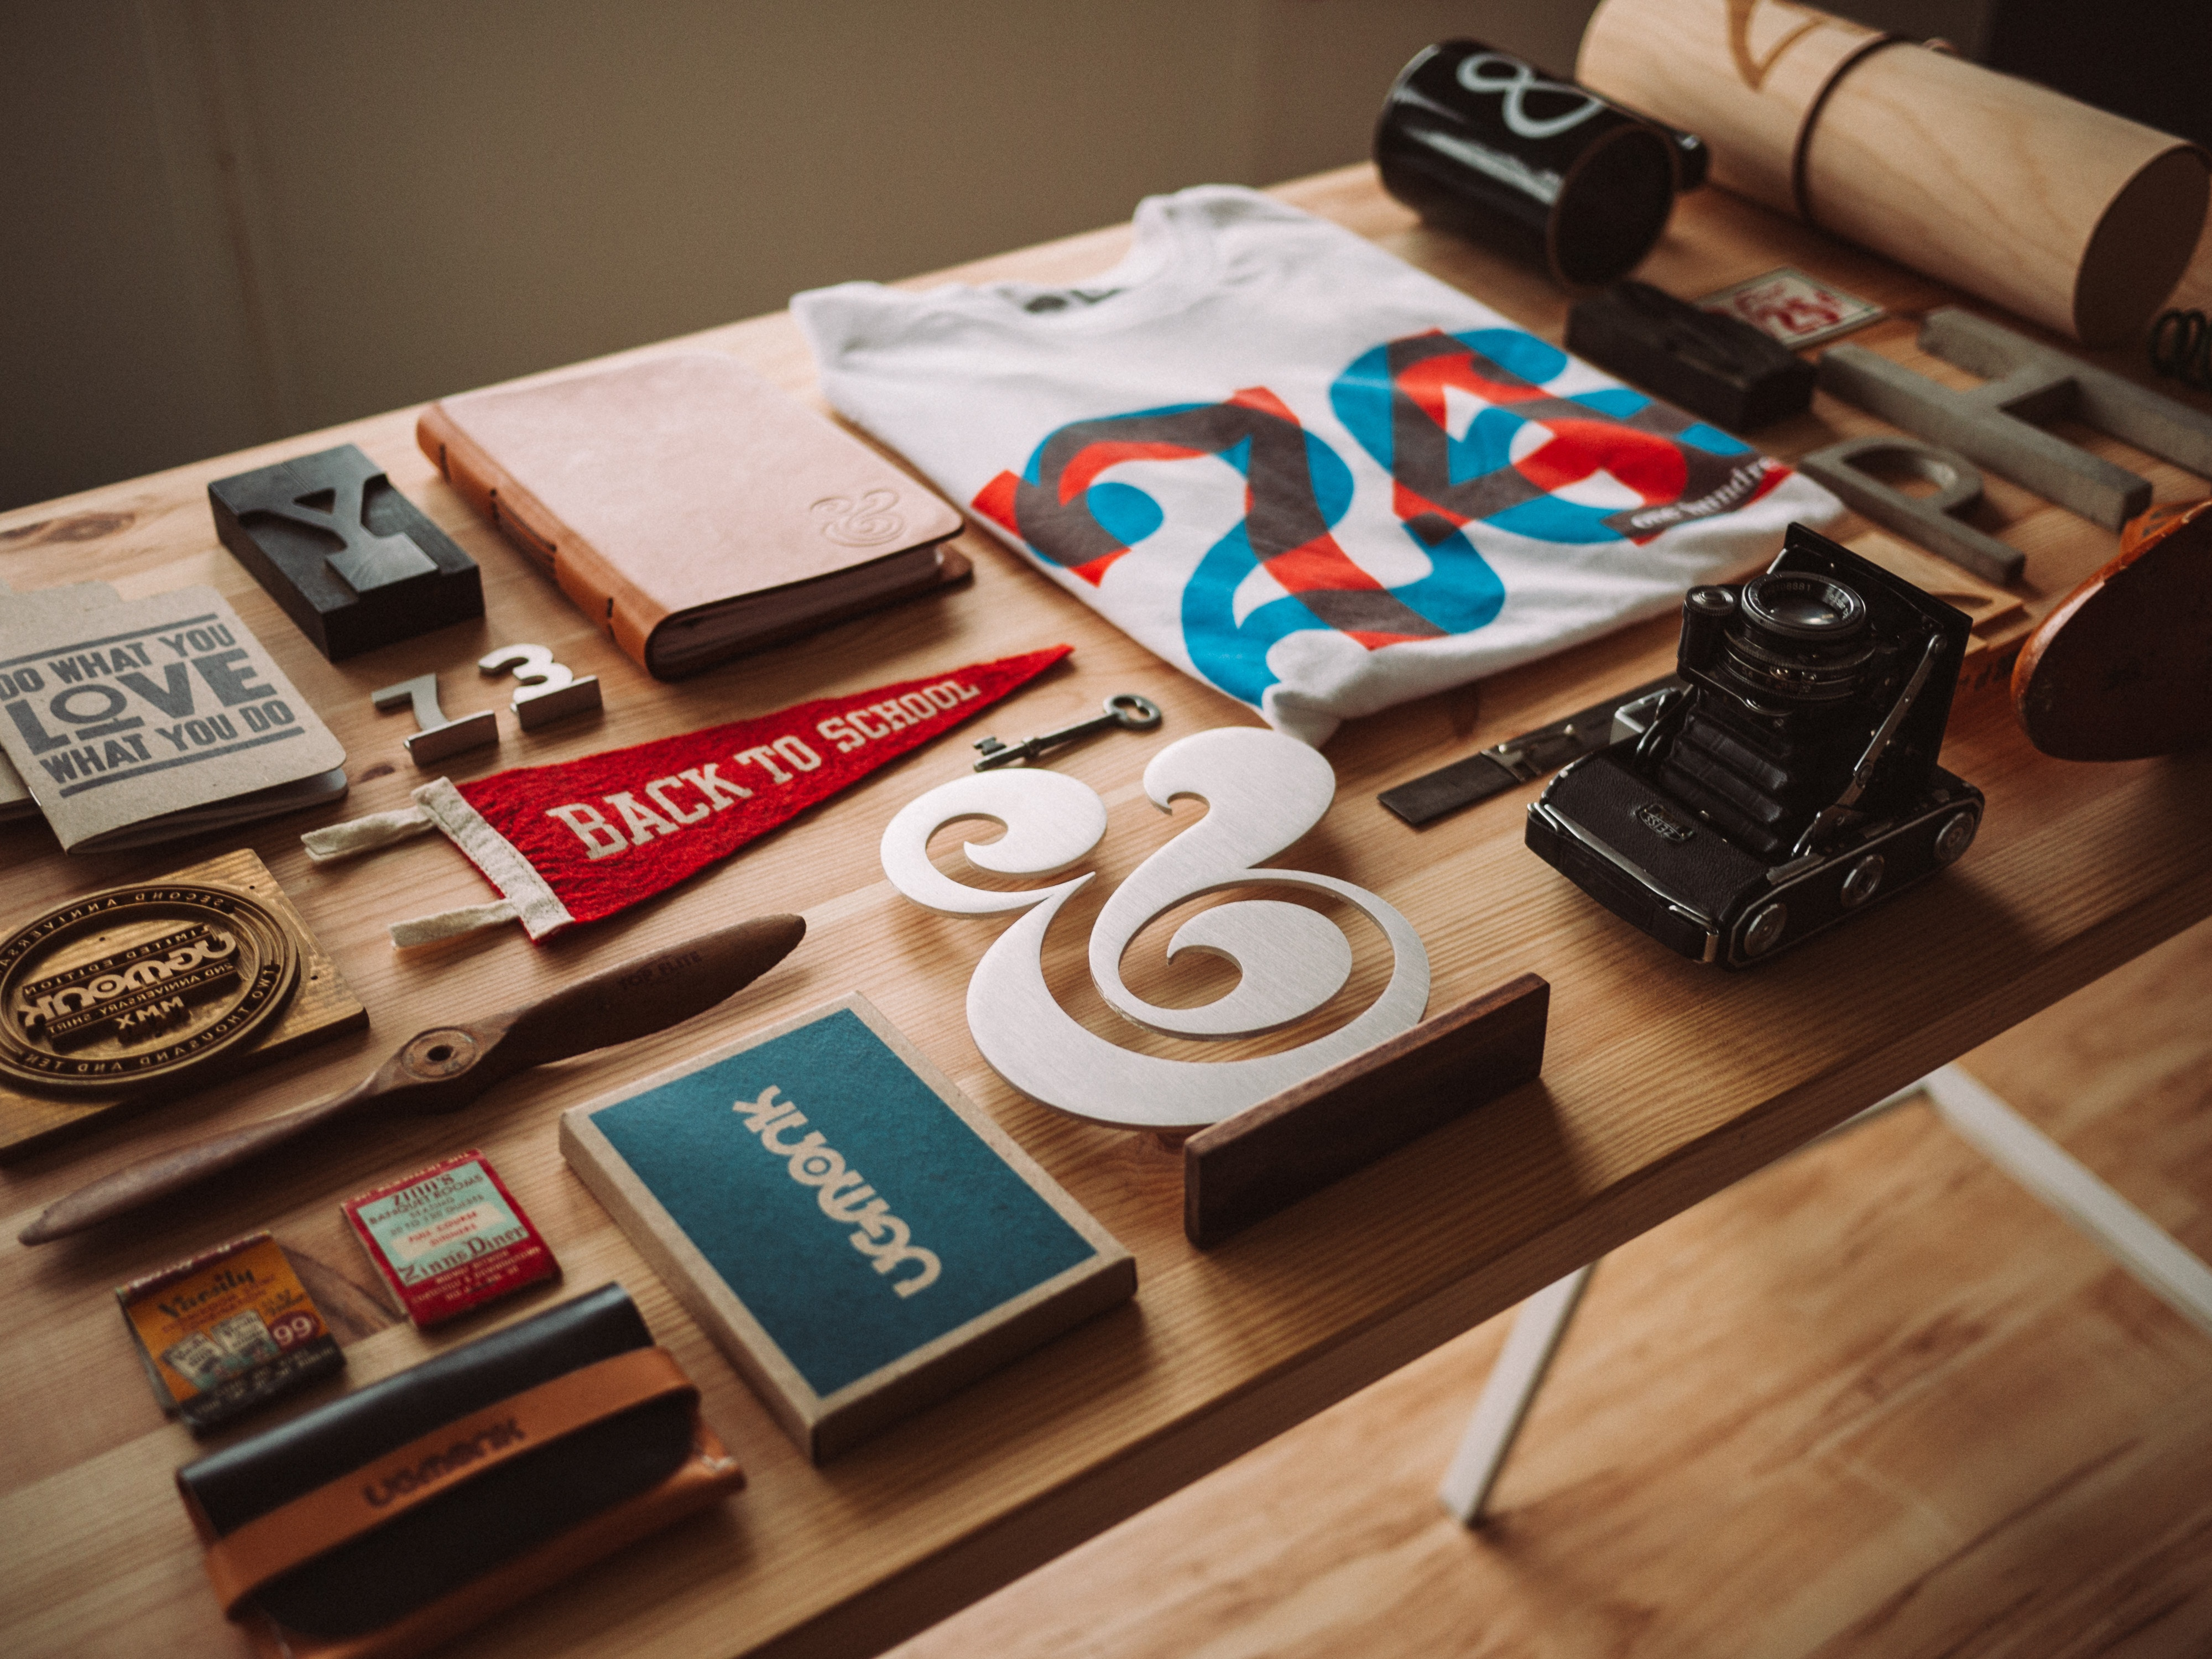 curated items on desk